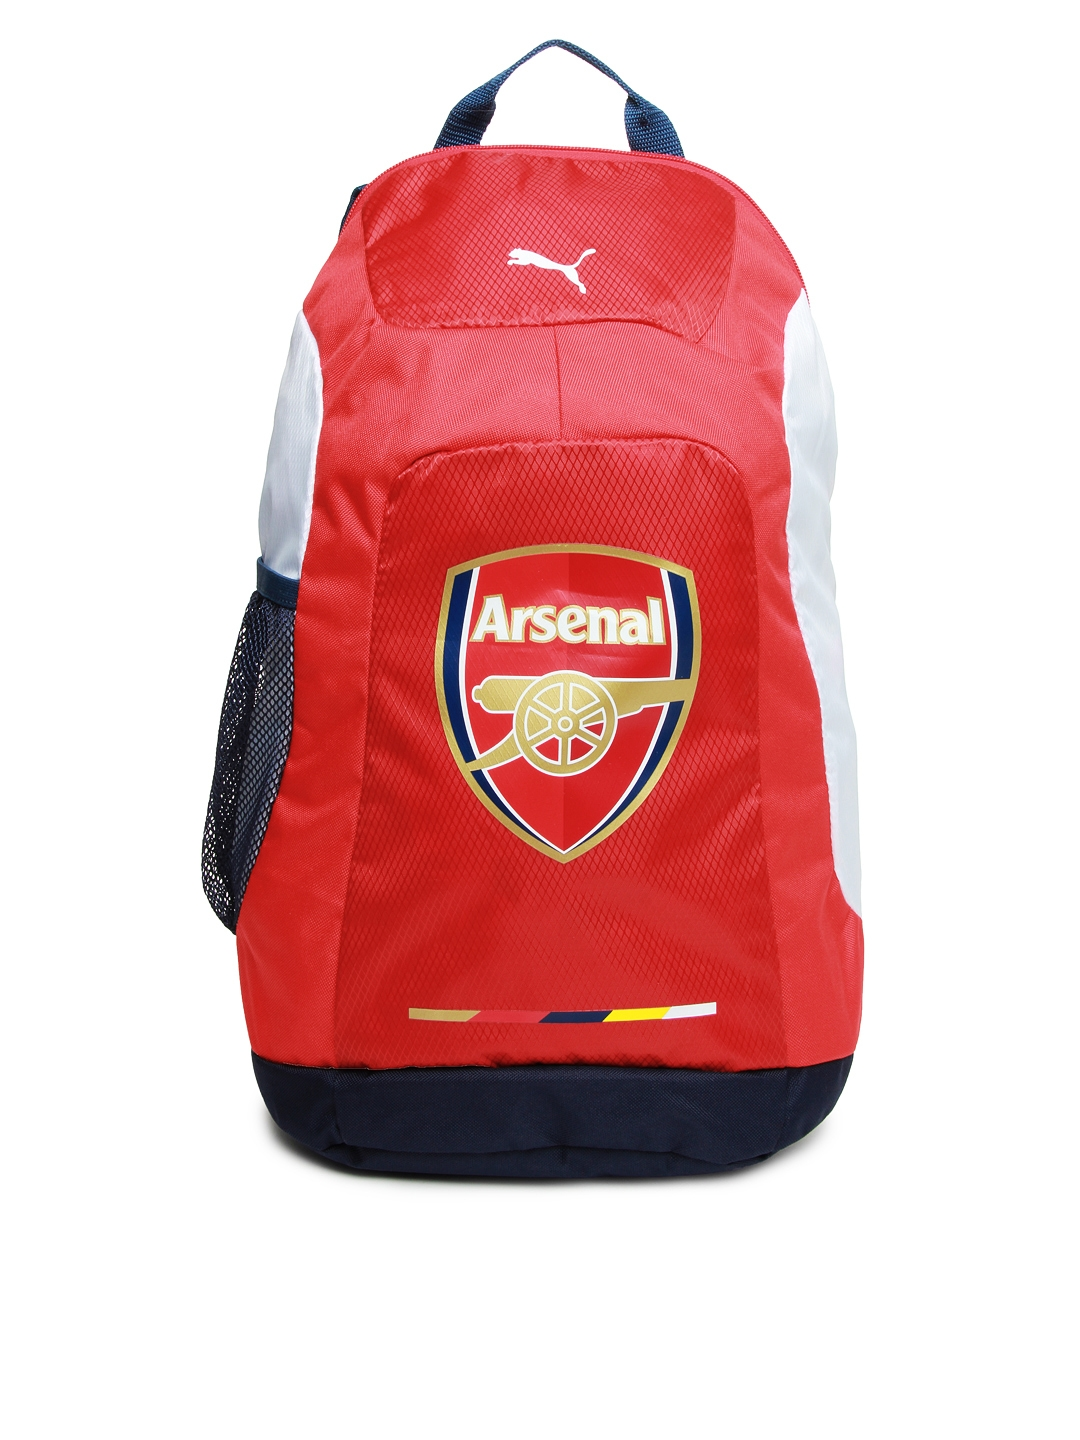 arsenal puma backpack